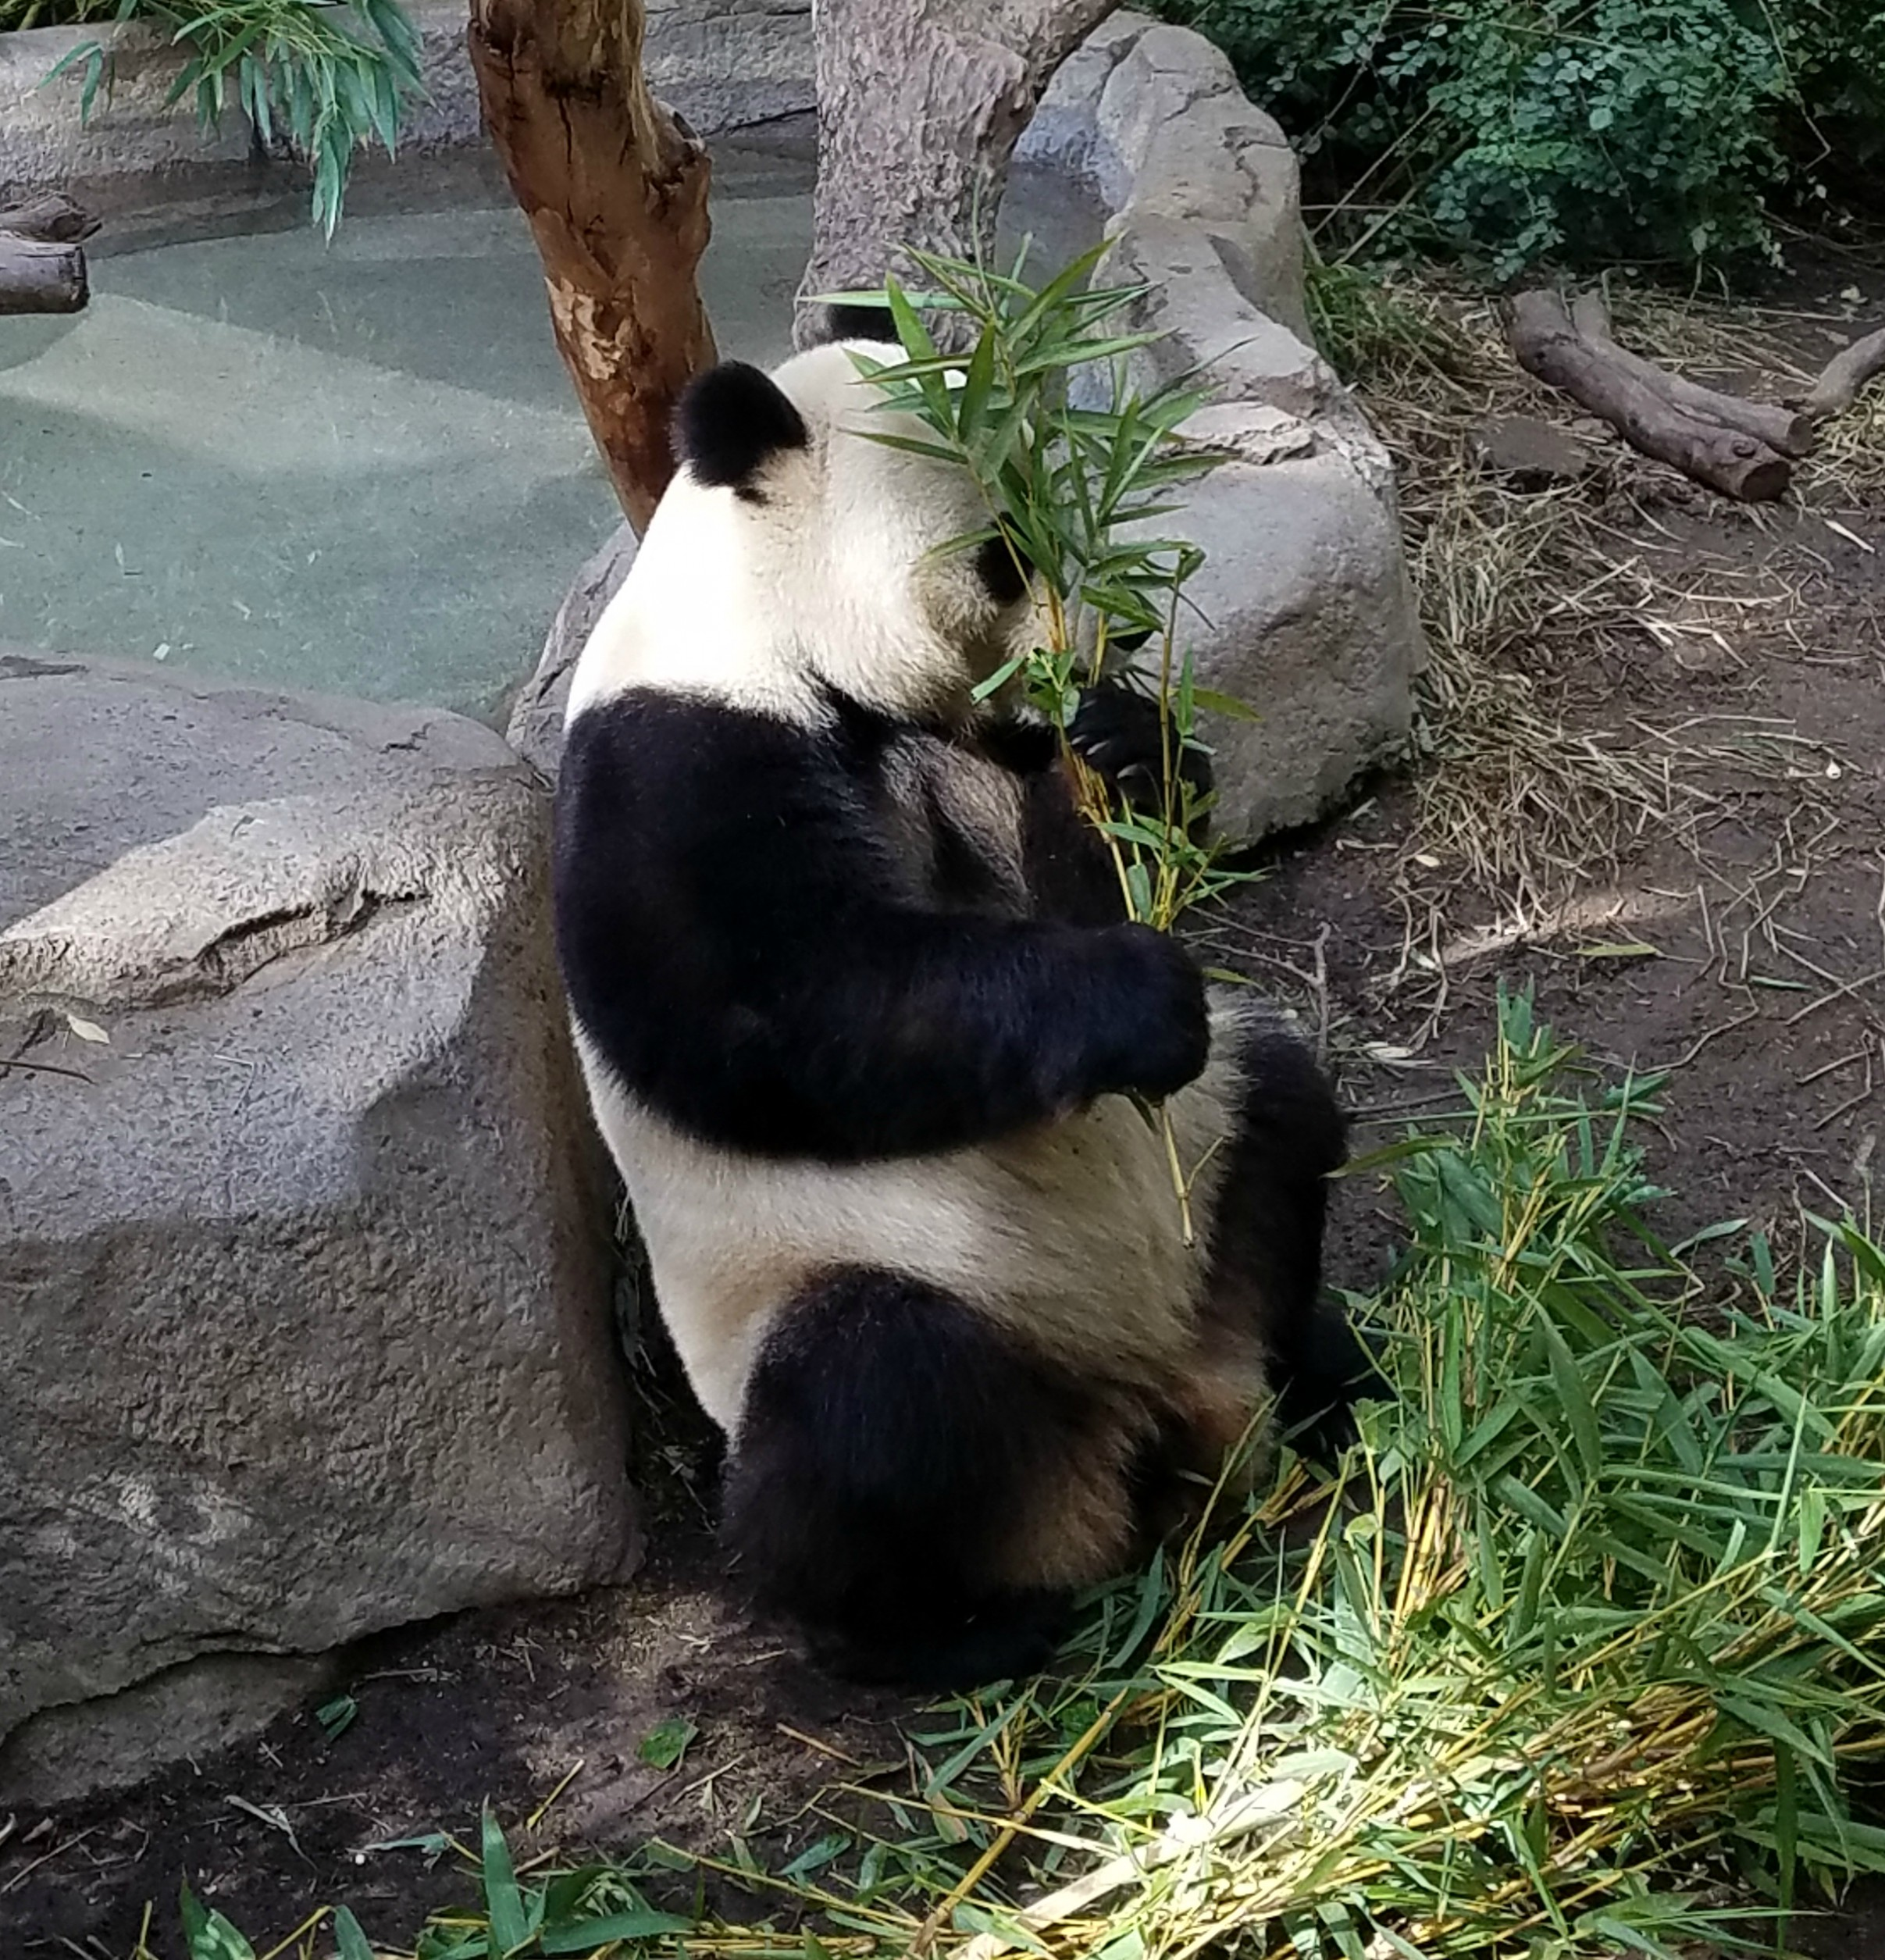 panda playing peekaboo